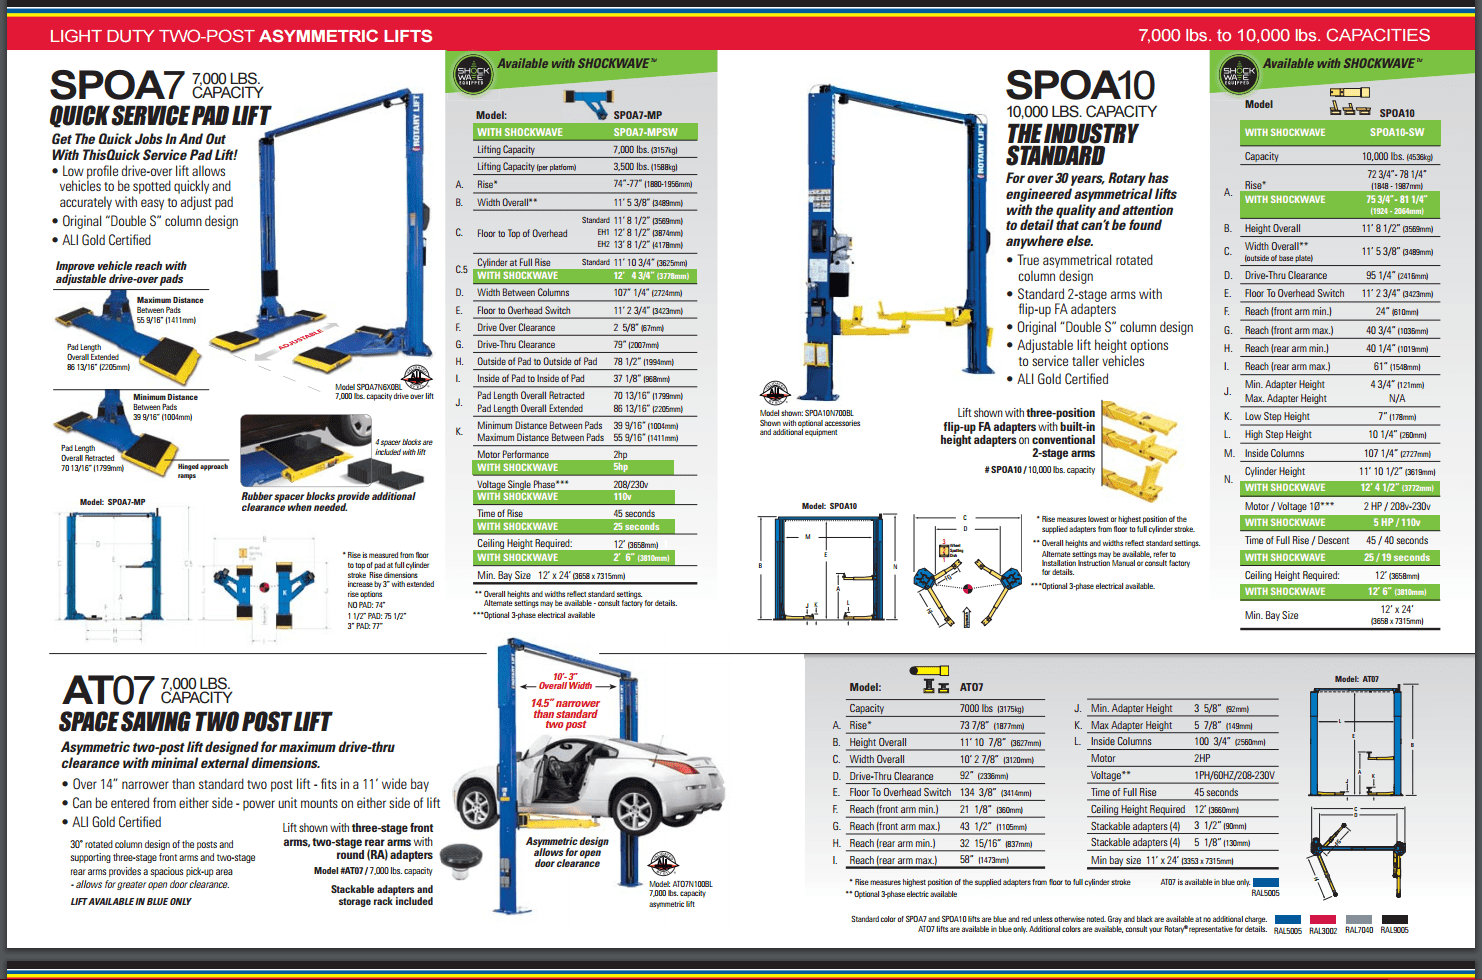 Rotary Spo10 Sw Shockwave Symmetrical 2 Post Lift Fast